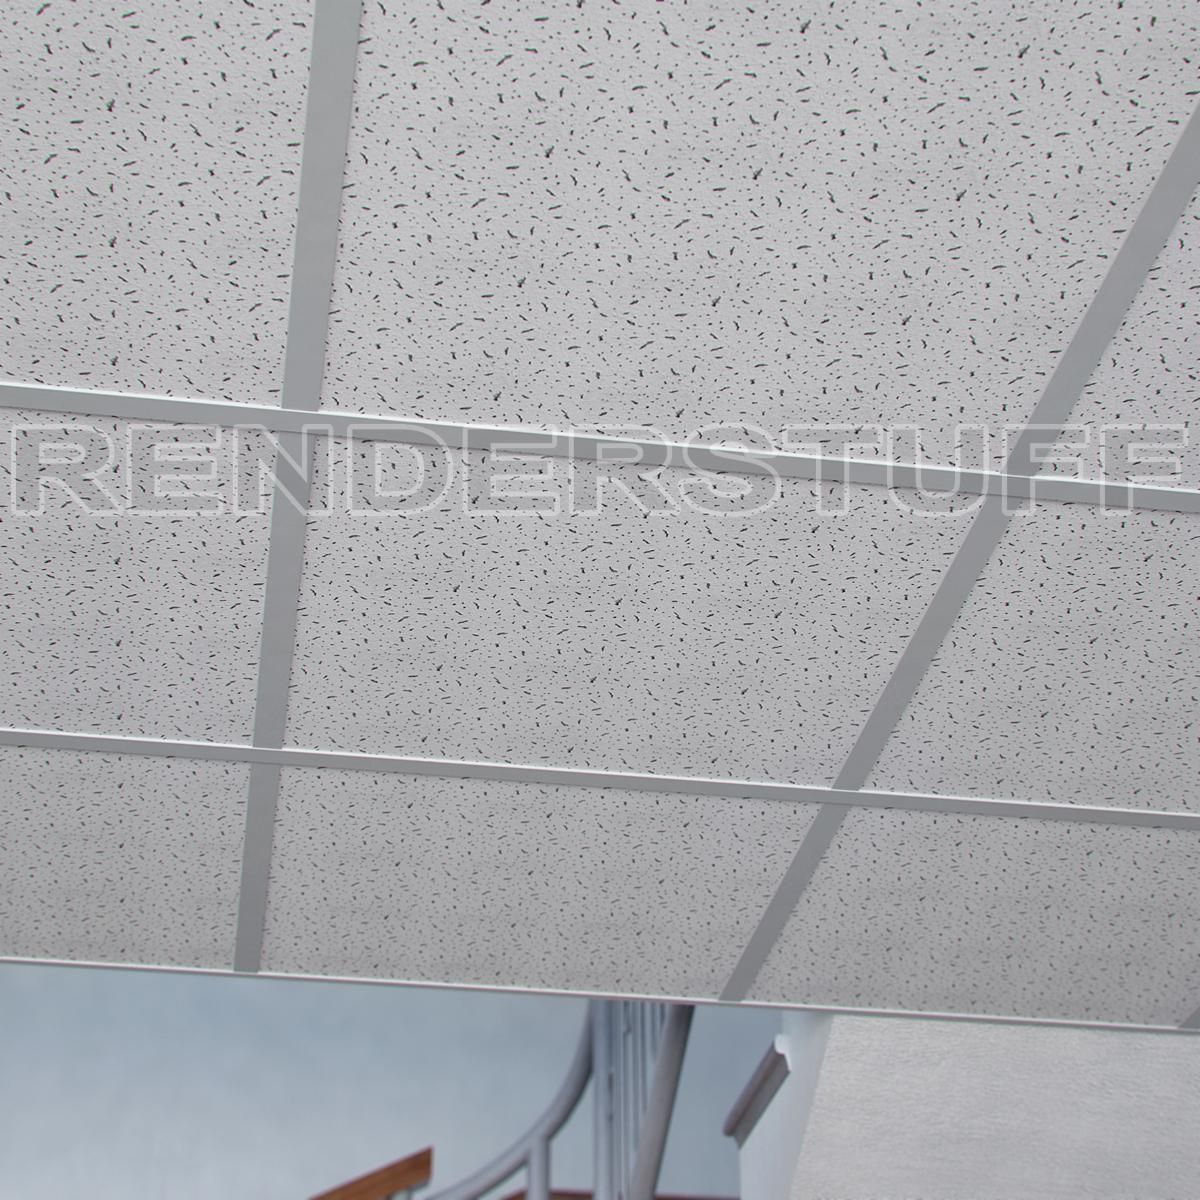 Armstrong bathroom ceiling tiles bathroom exclusiv pinterest armstrong bathroom ceiling tiles dailygadgetfo Images